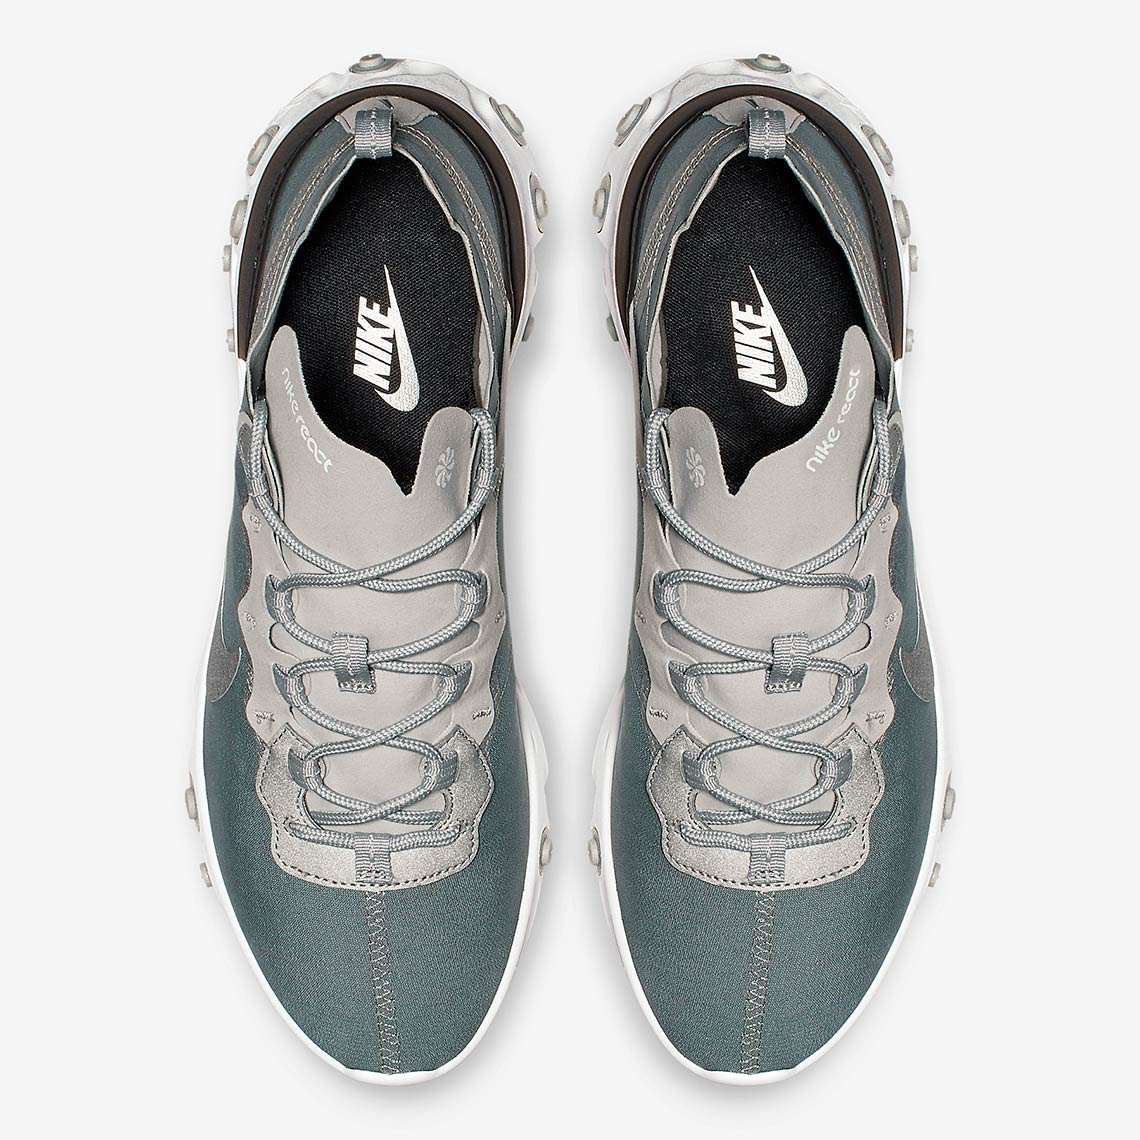 7b244f8221a9 Nike React Aspect 55 Appears In Silver Tones - Supreme California